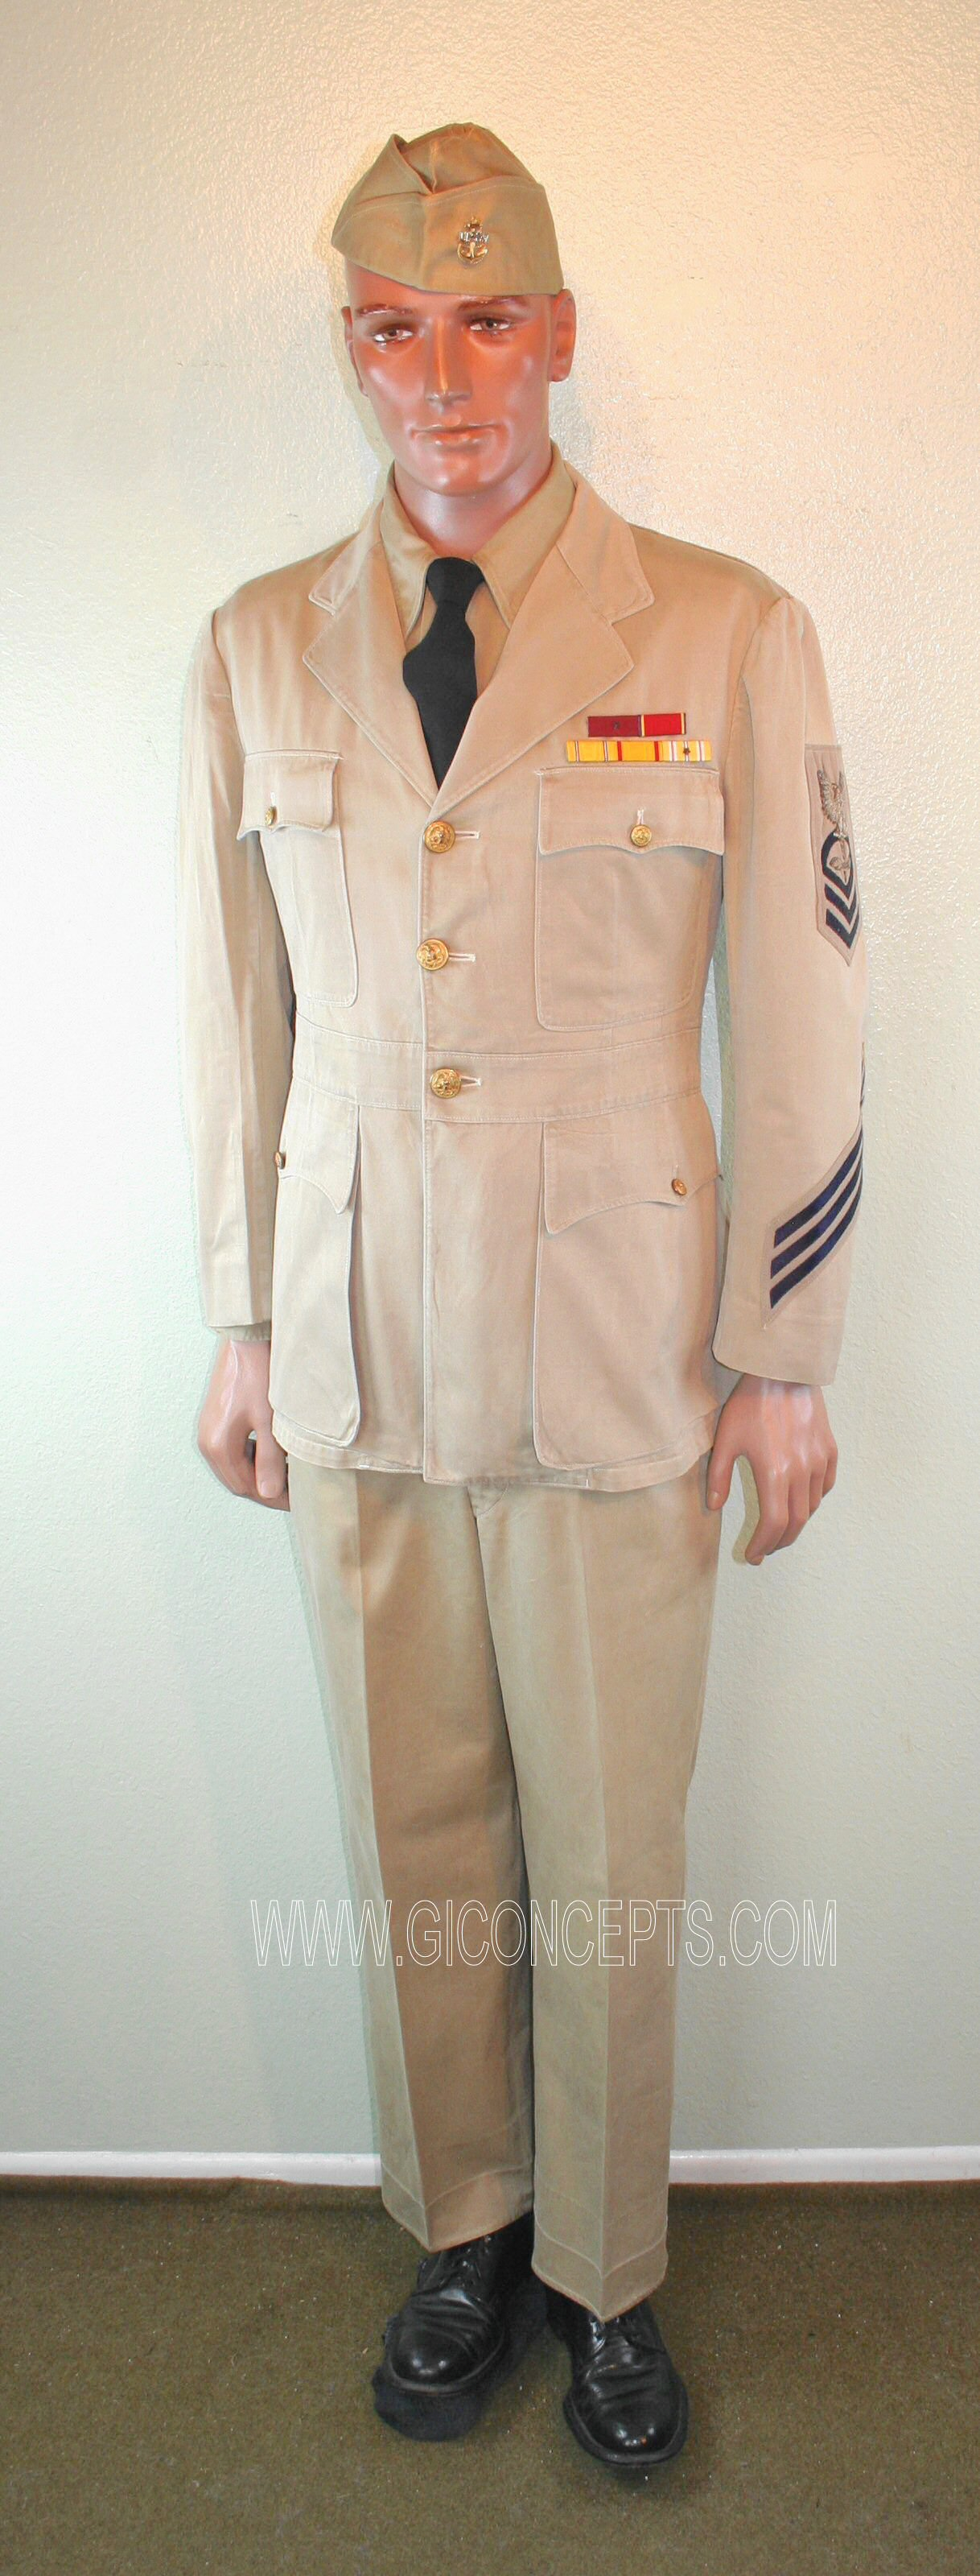 US Navy Chief Aviation Machinists Mate 1944